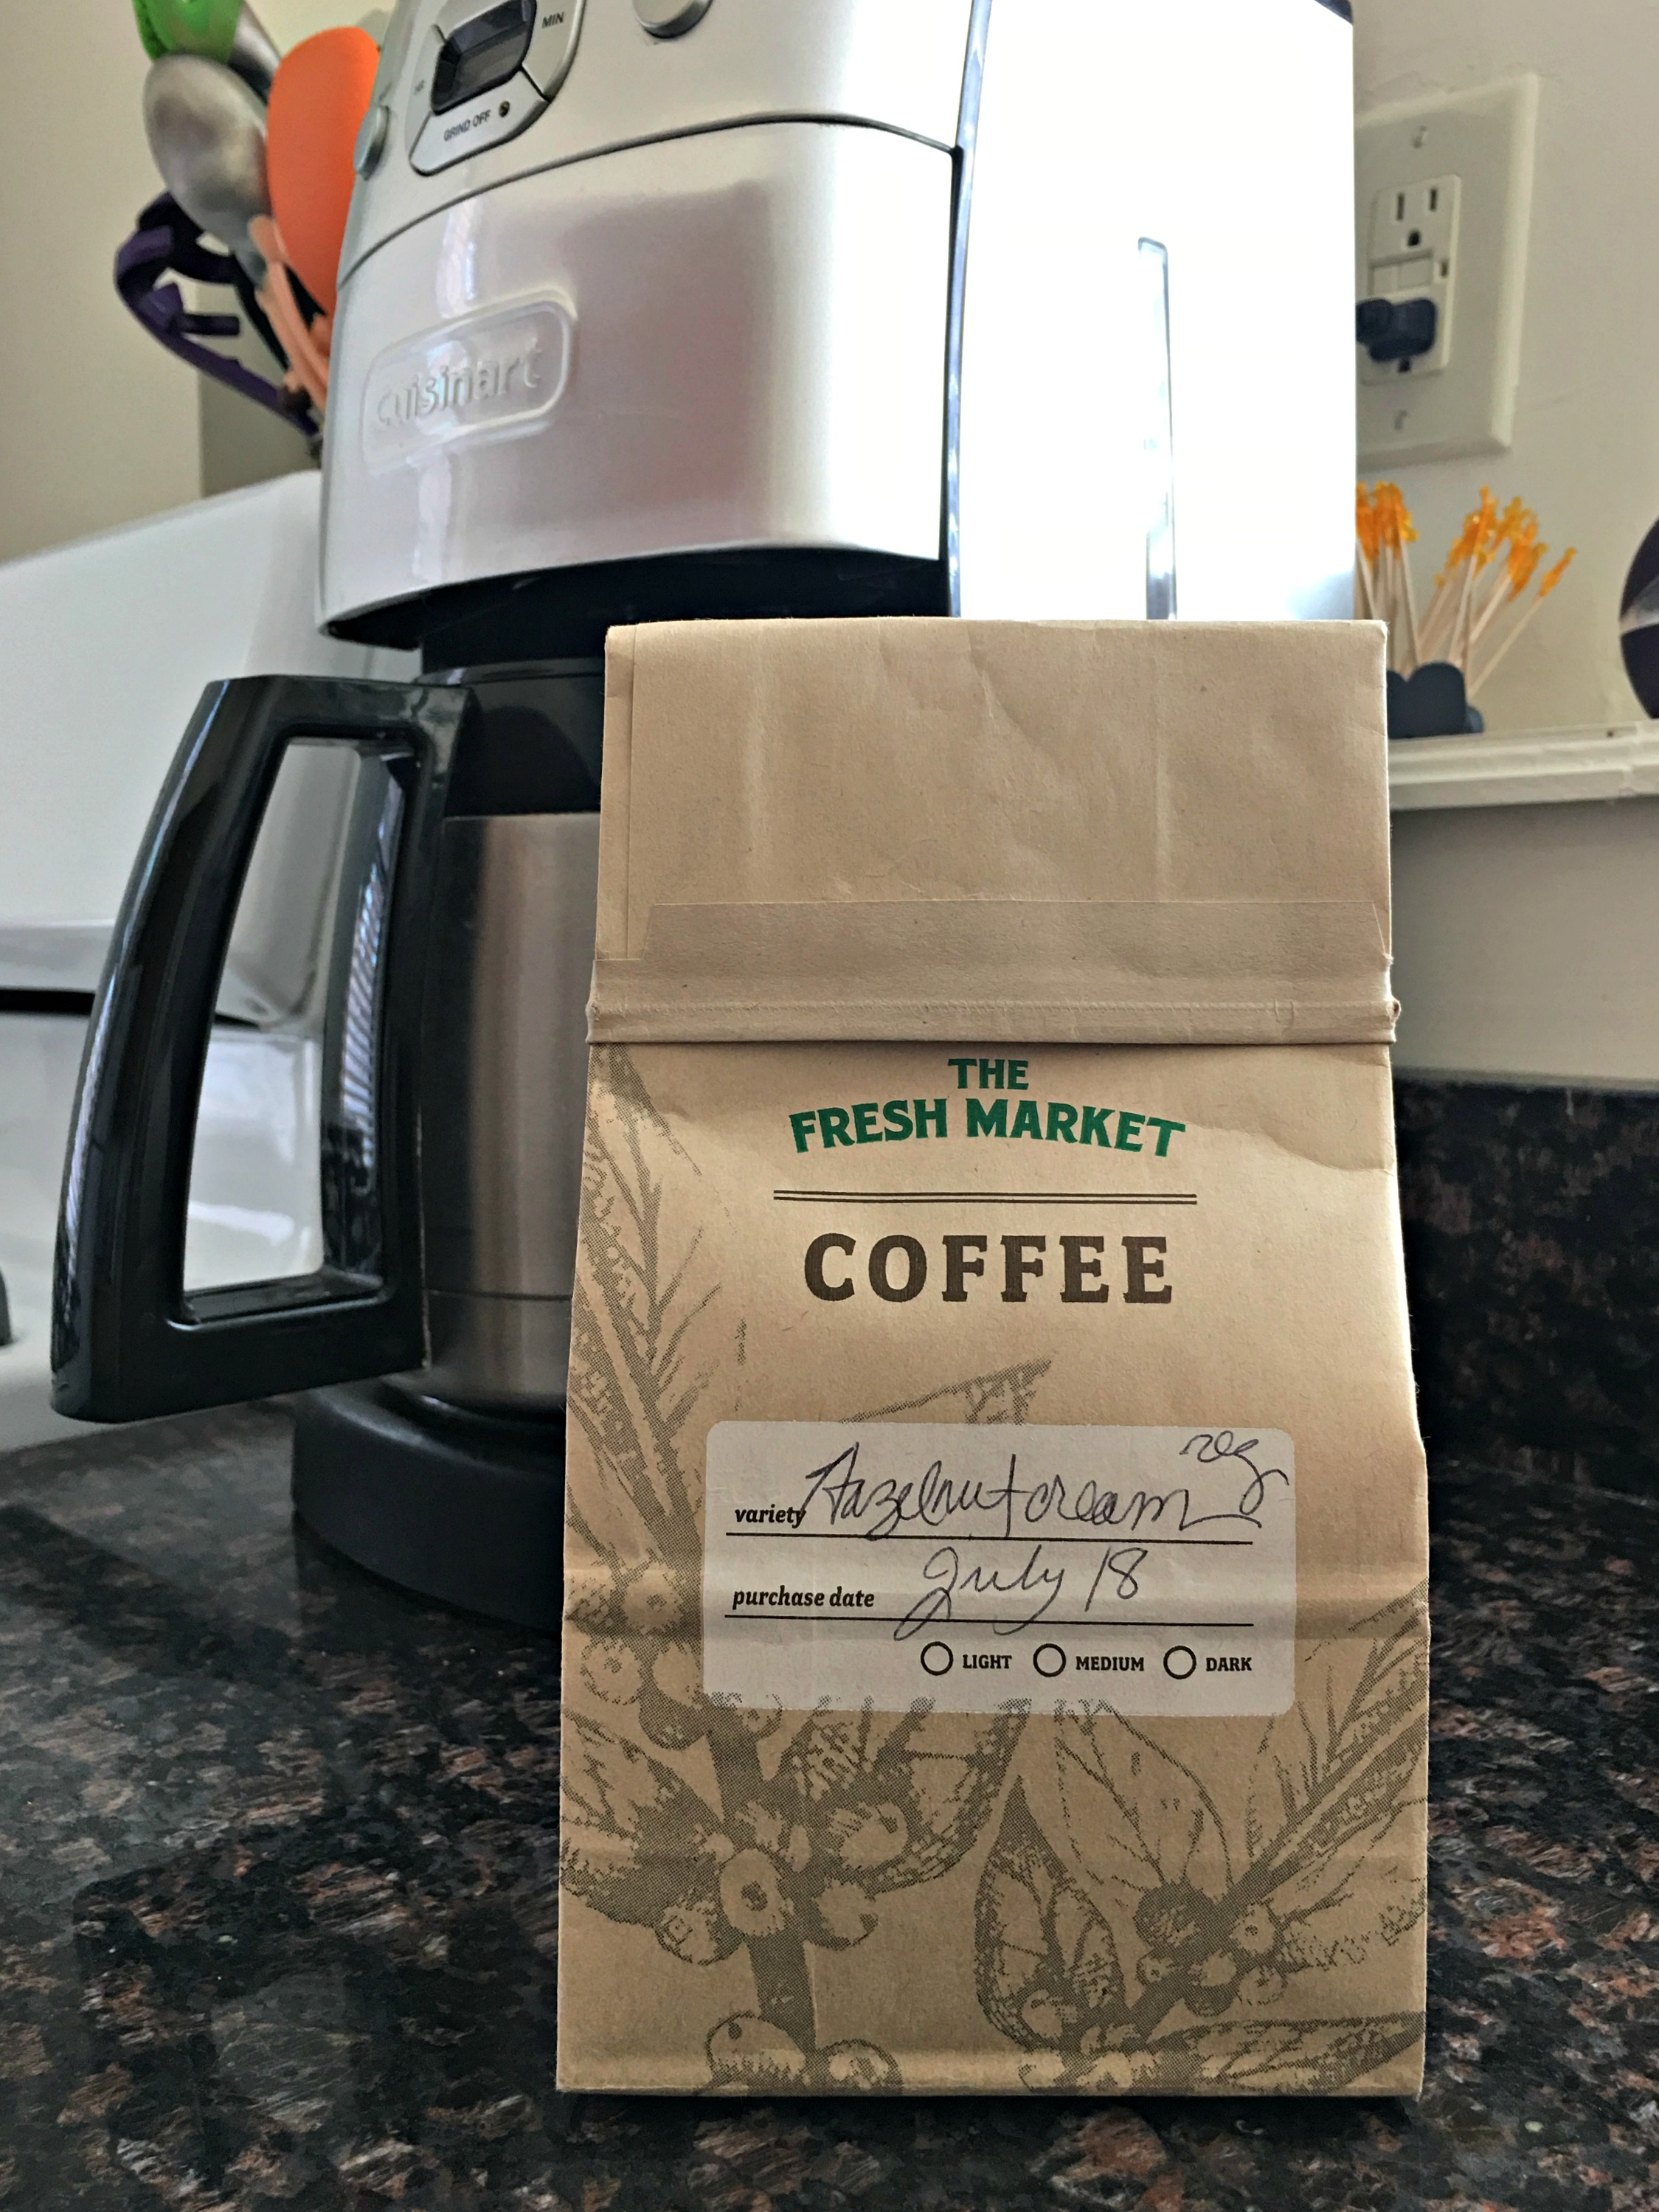 The Fresh Market coffee